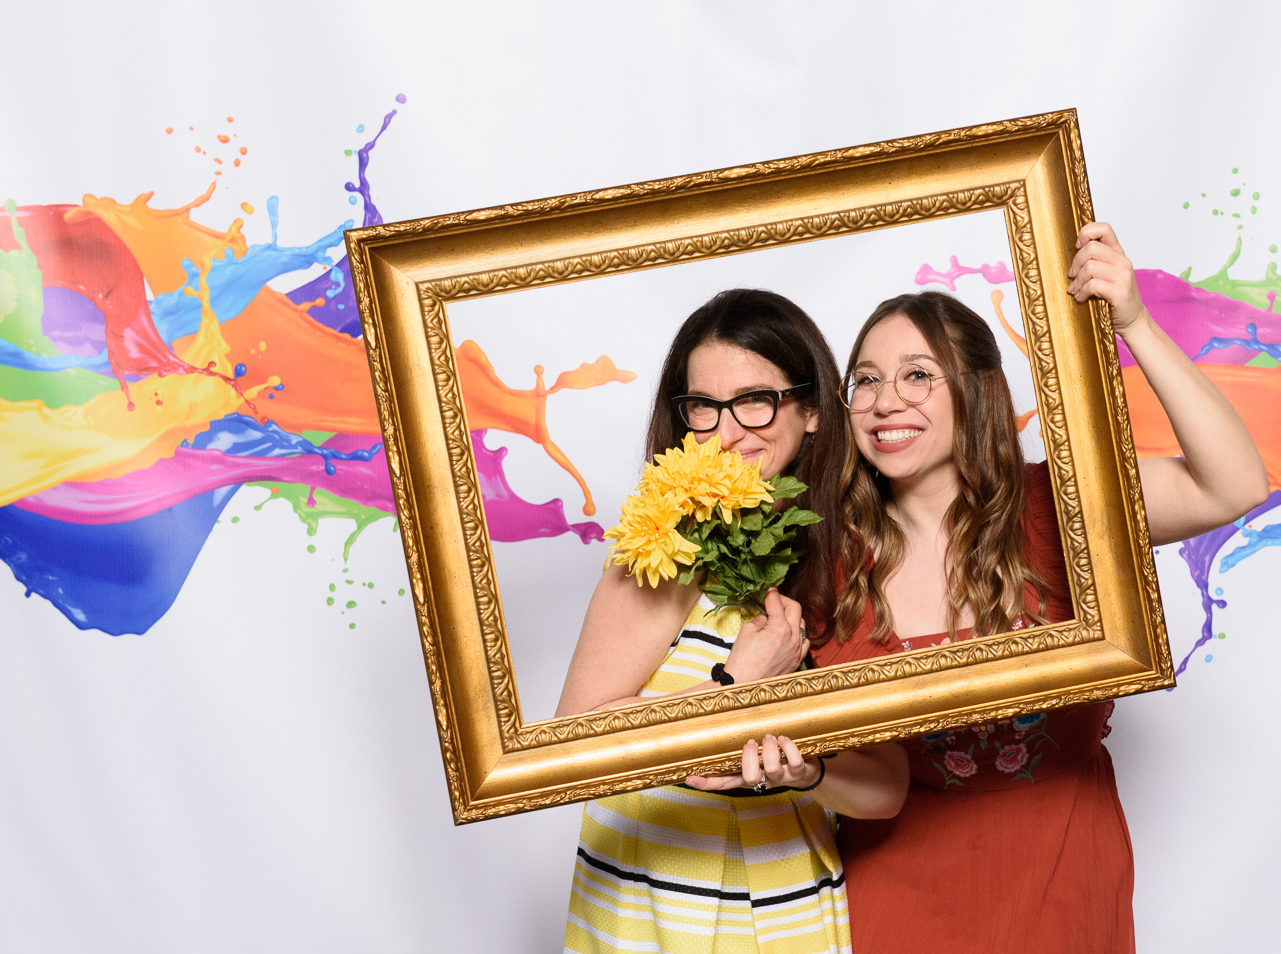 Two young women are posing in front of a colorful backdrop with an empty picture frame and fake flowers